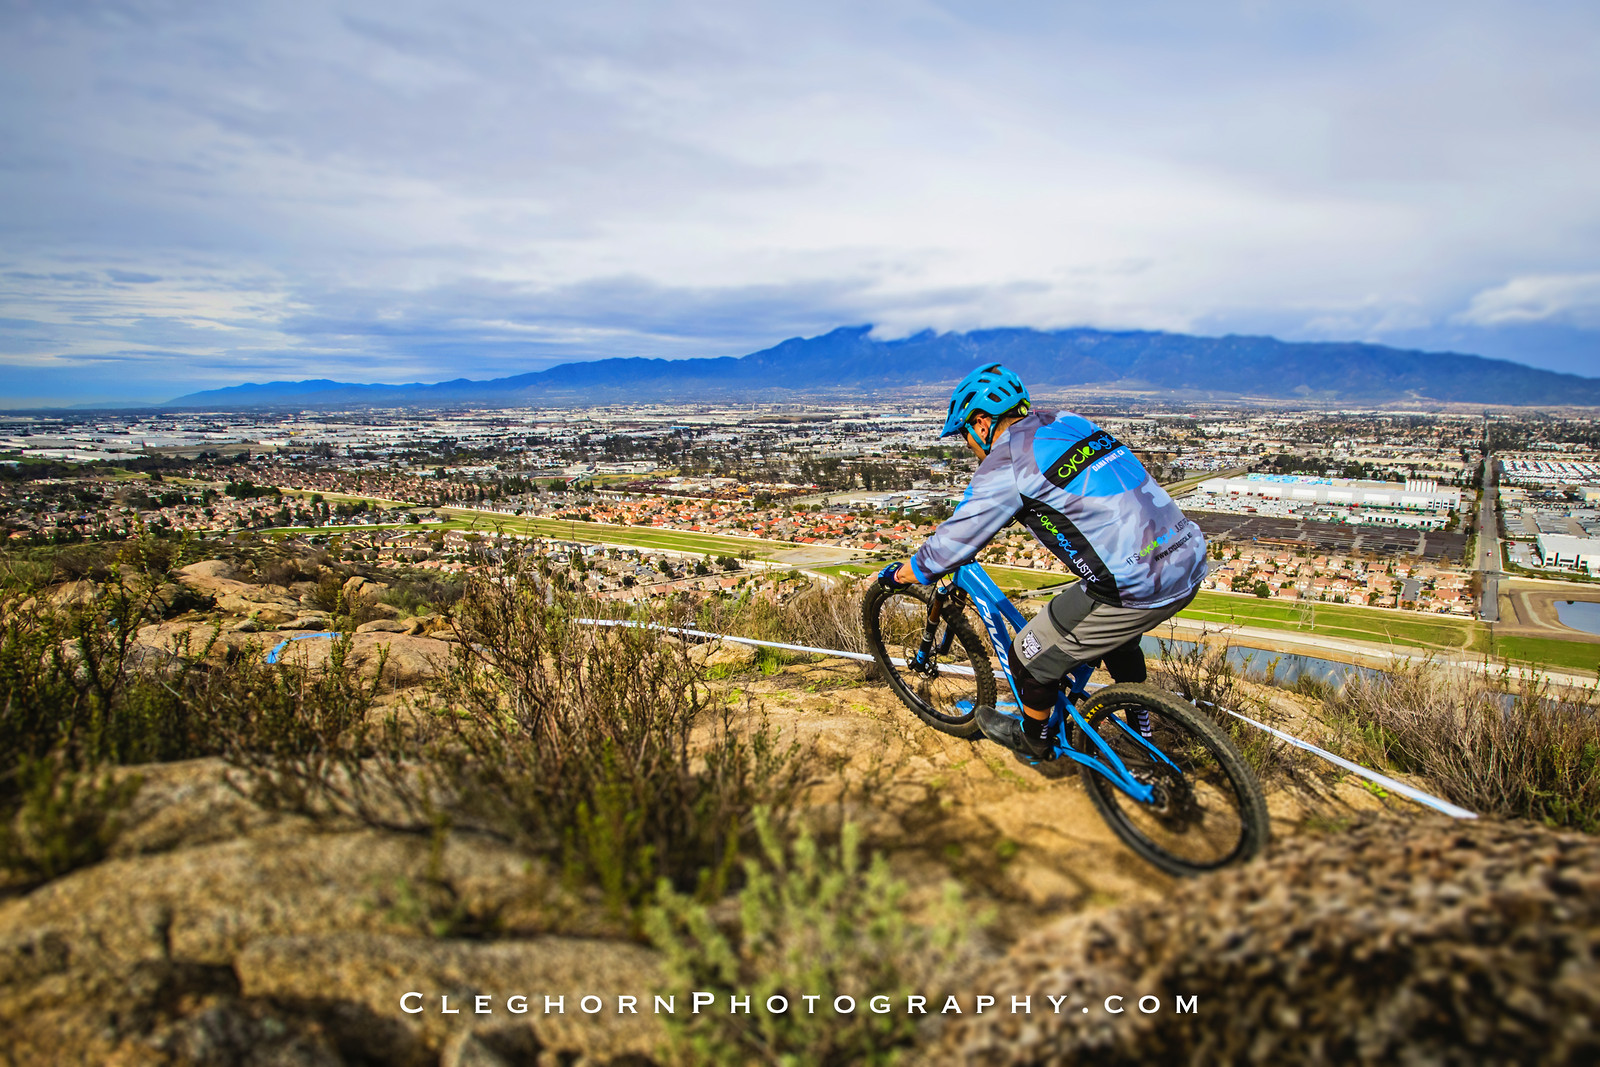 Landscaping - Cleghorn Photography - Mountain Biking Pictures - Vital MTB